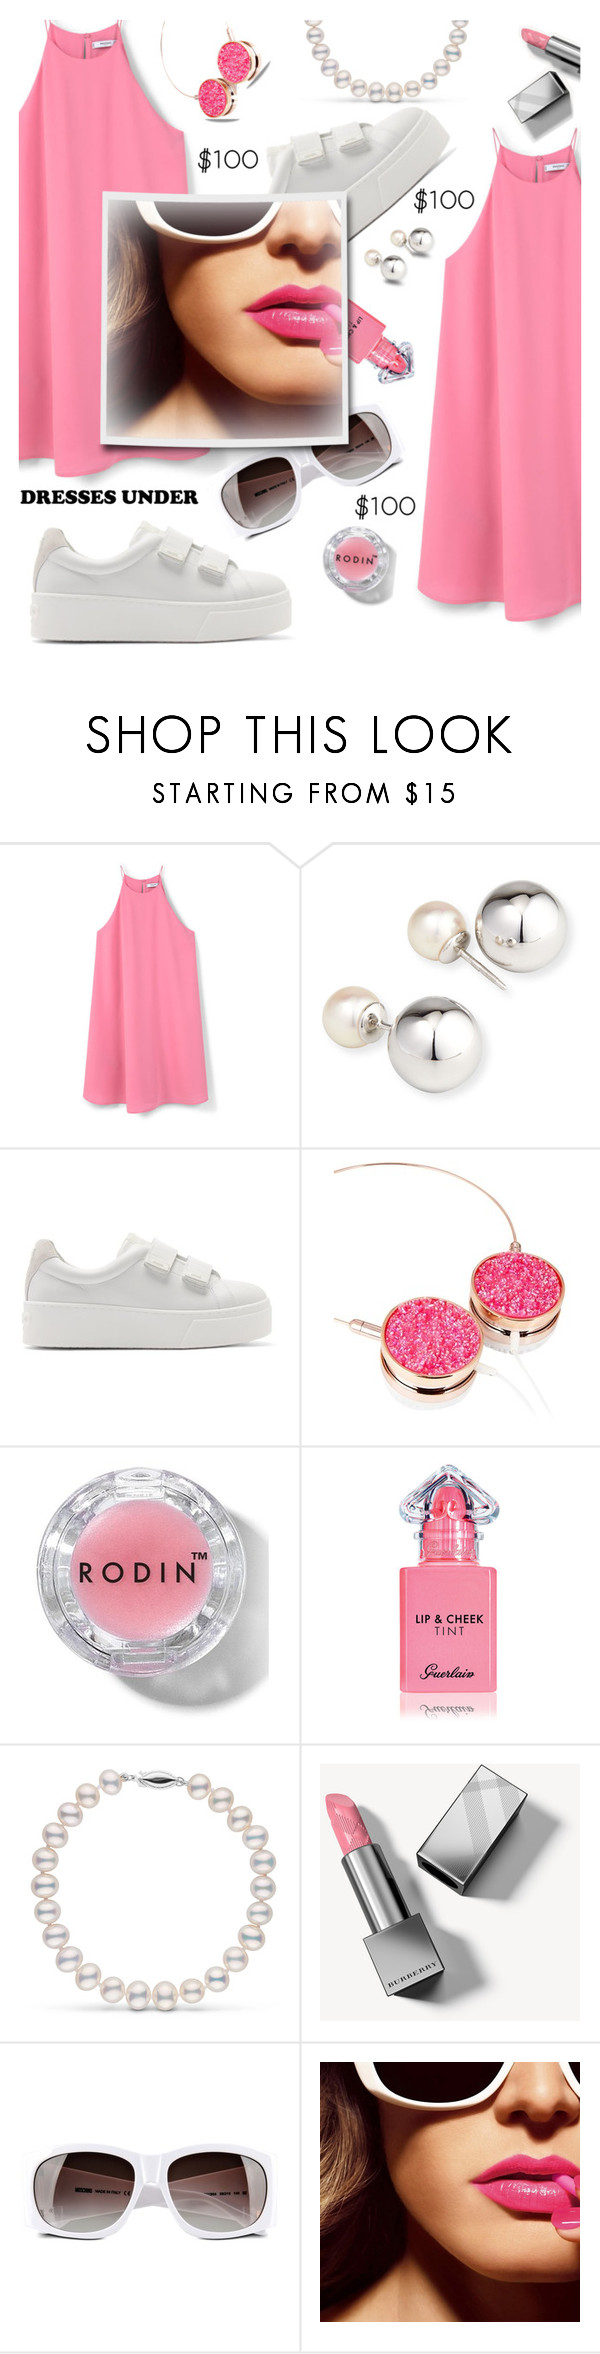 """Pink & bling"" by nineseventyseven ❤ liked on Polyvore featuring MANGO, Yoko London, Kenzo, Skinnydip, Rodin, Guerlain, Burberry and Moschino"